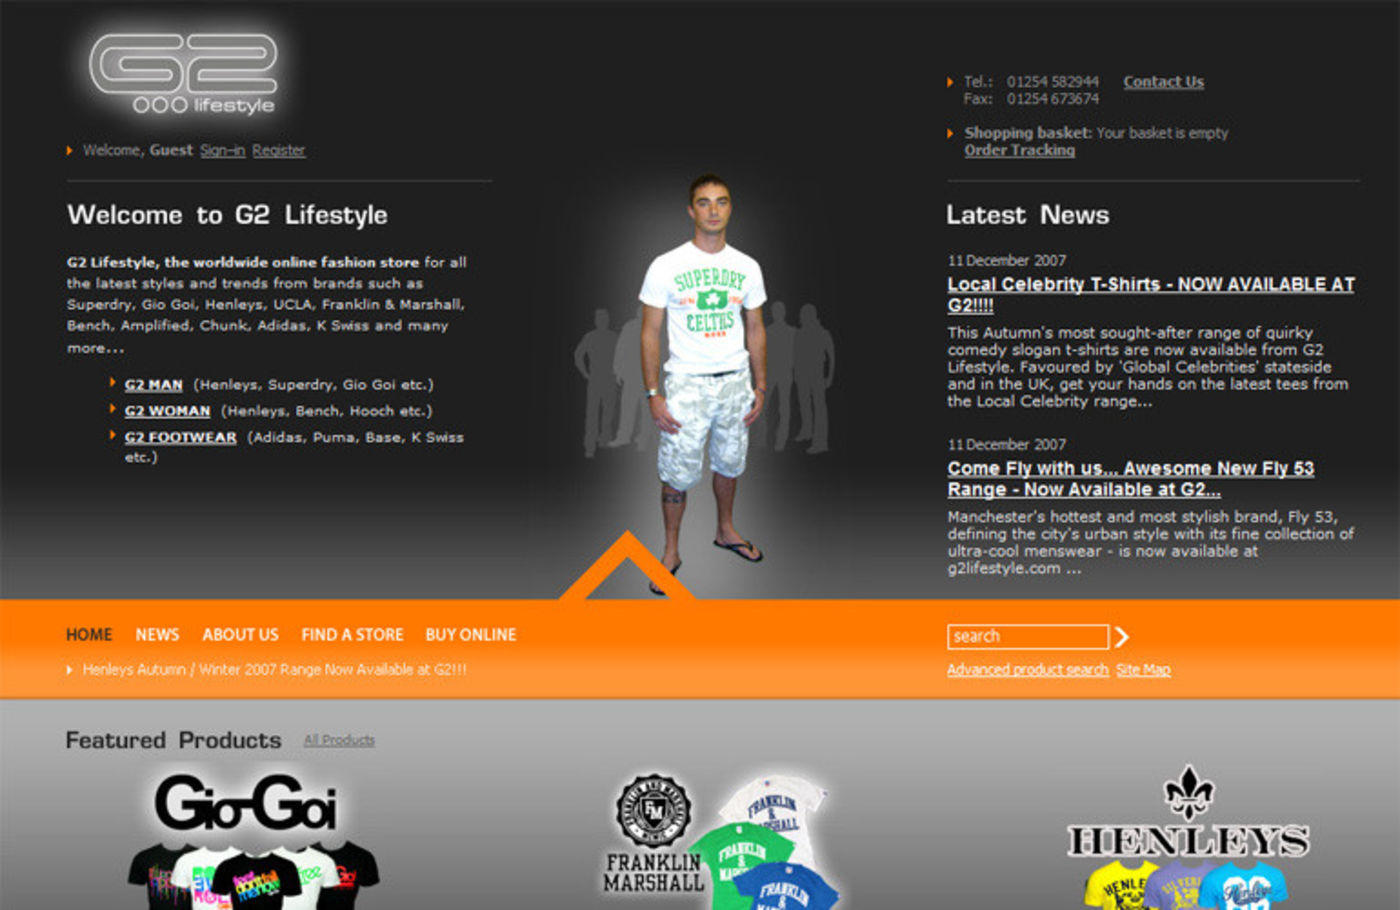 G2 Lifestyle Homepage header - G2